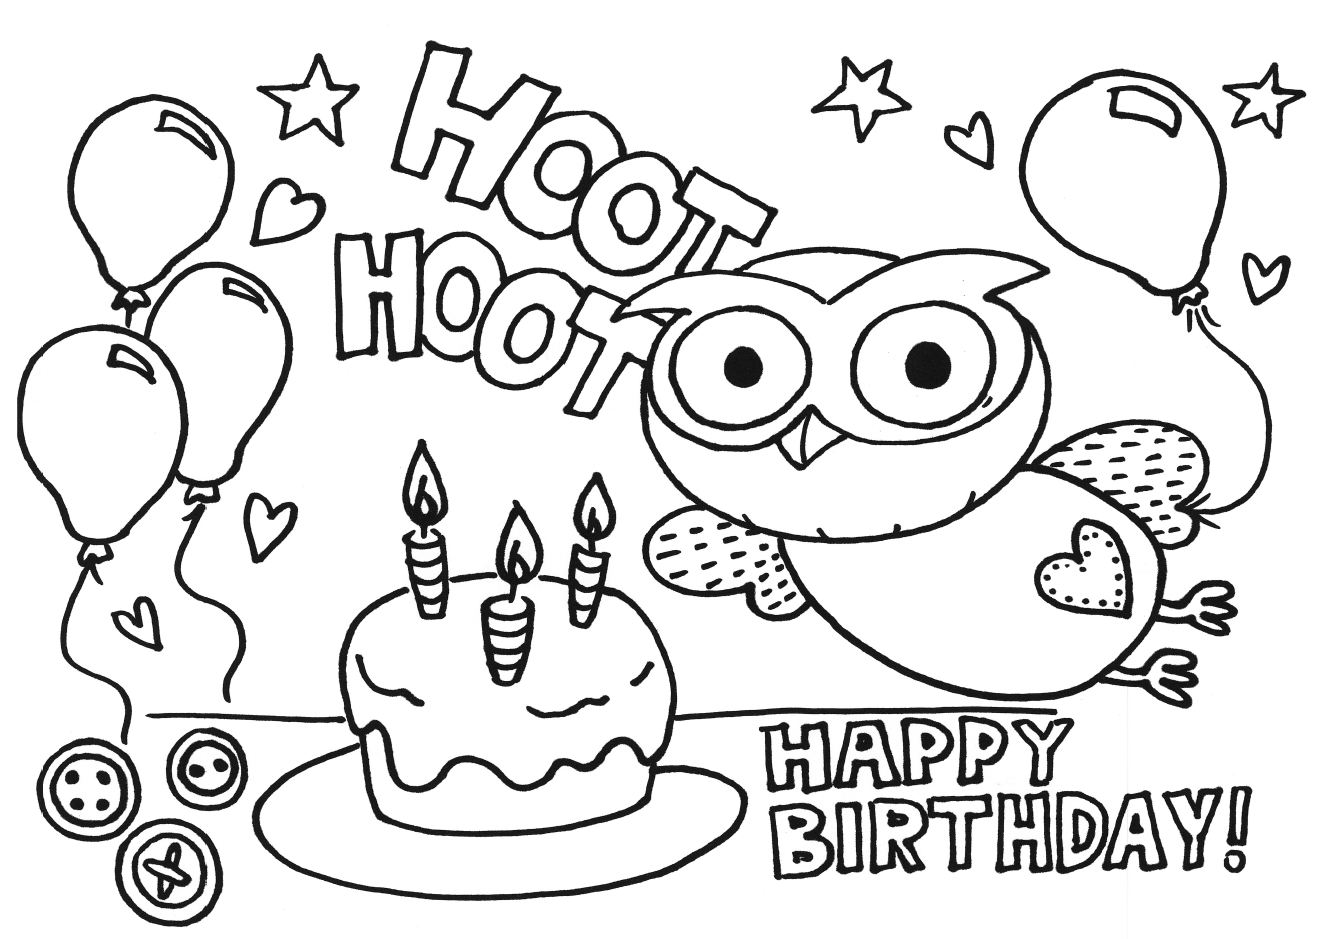 Printable Happy Birthday Coloring Pages Coloring Me Birthday Printable Coloring Pages